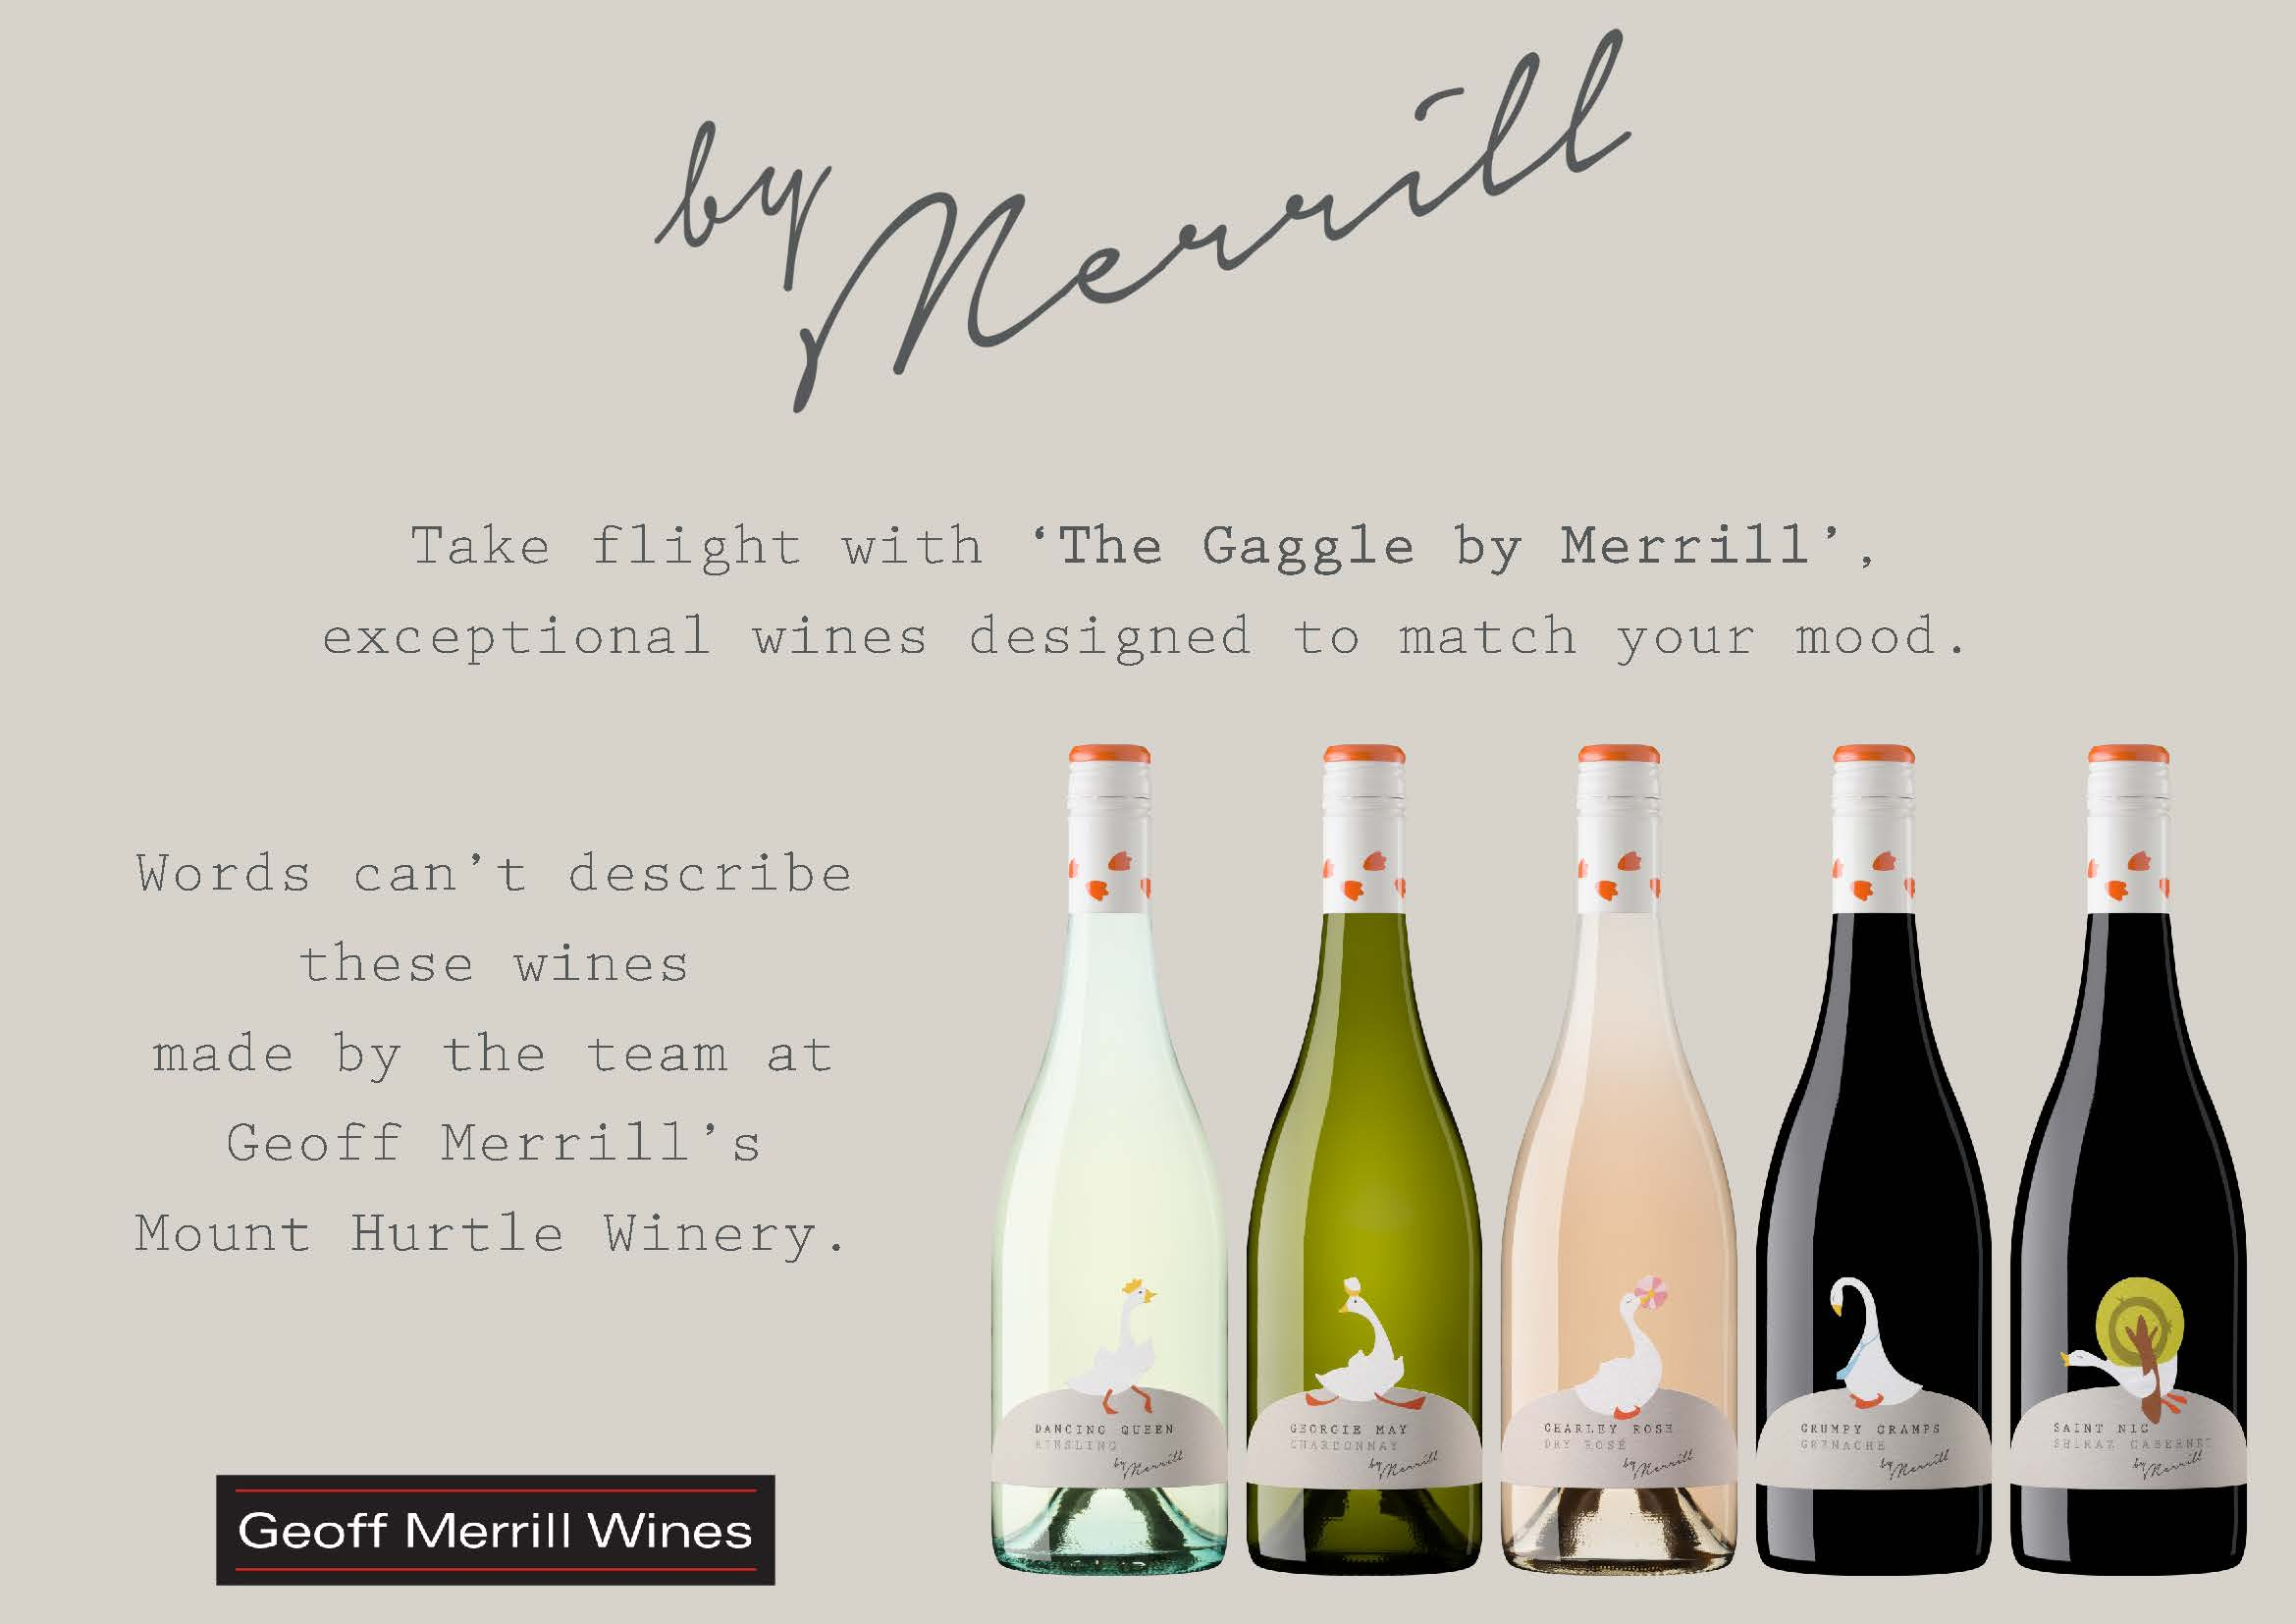 Introducing The Gaggle by Merrill